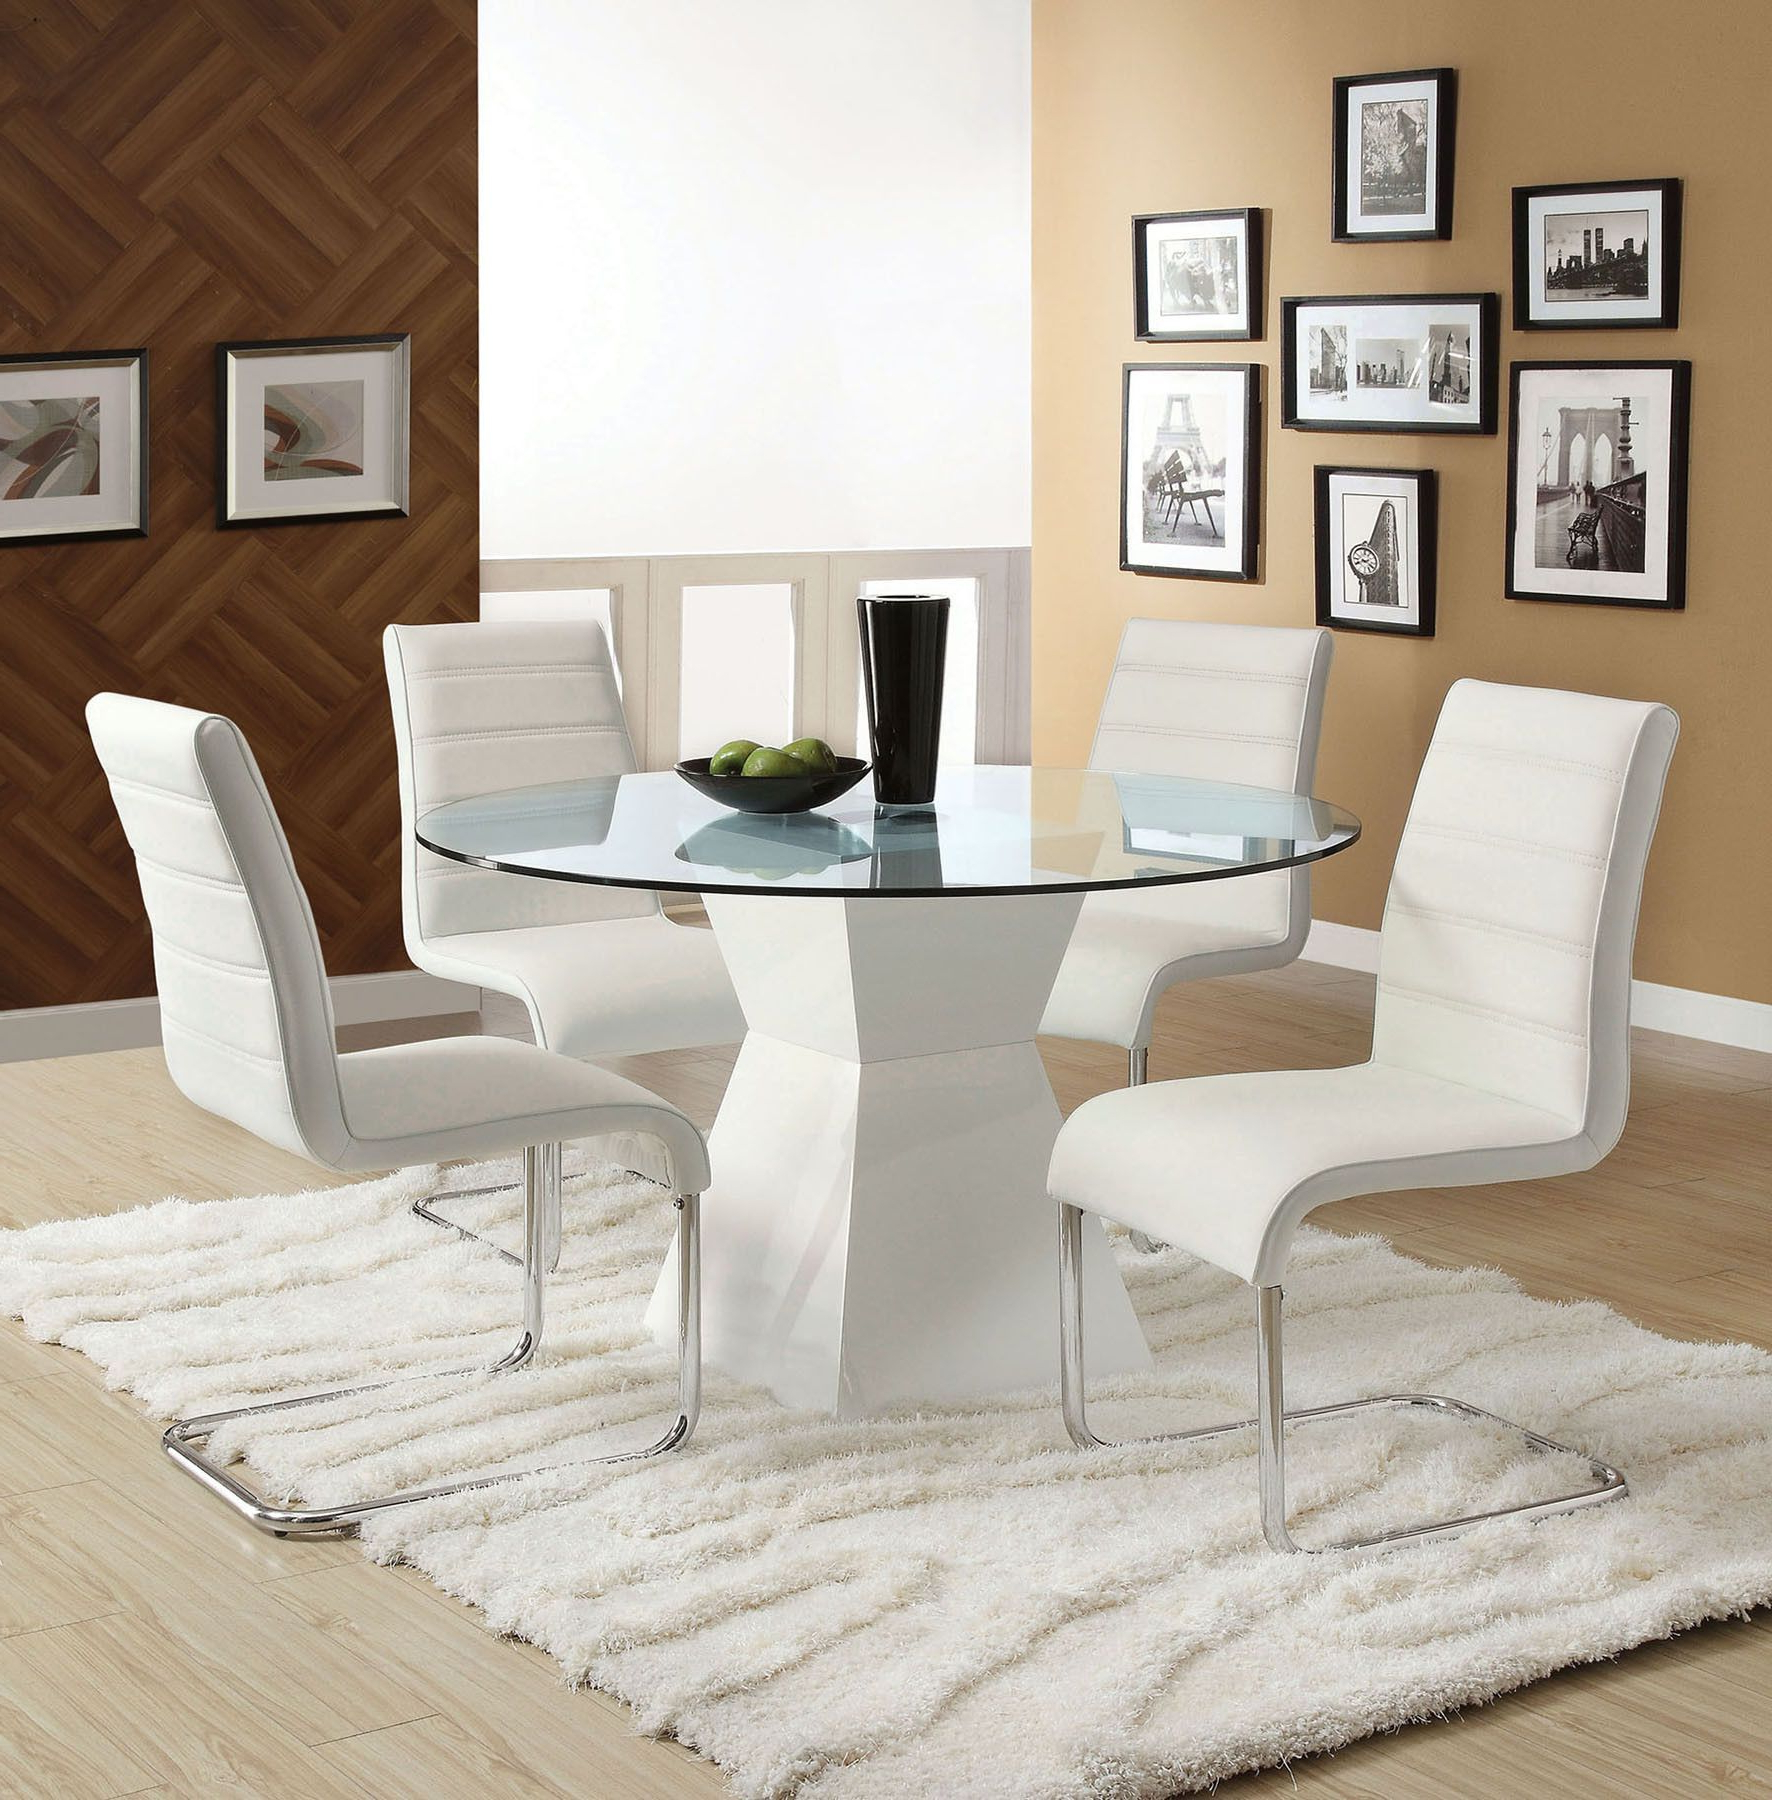 Cm8371T Mauna Collection White Glass Top Round Dining Table For Widely Used Modern Round Glass Top Dining Tables (View 19 of 25)